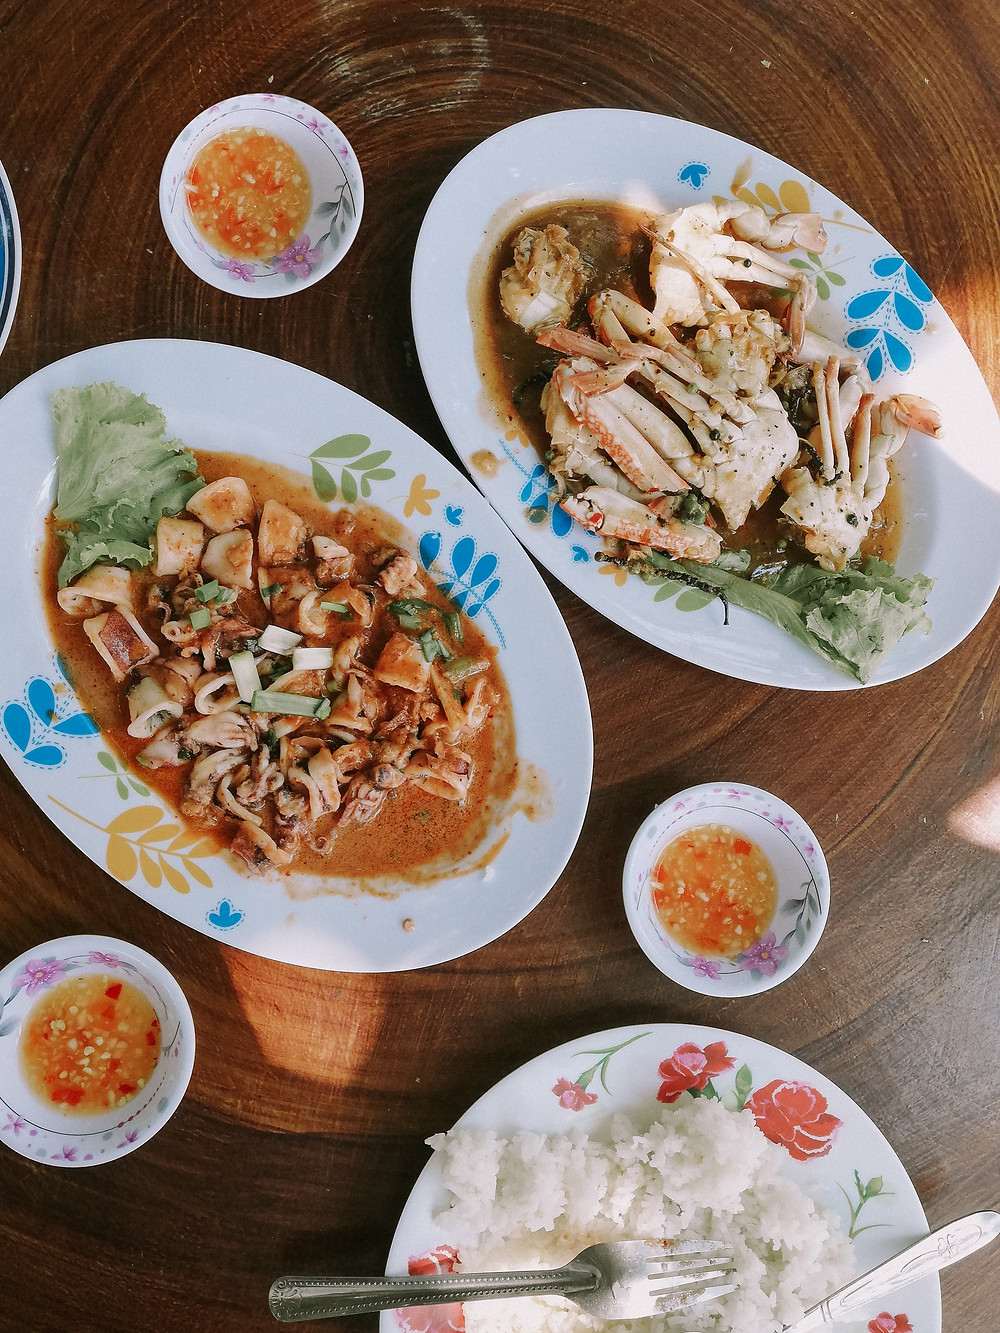 Seafood dishes in Koh Tonsay or Rabbit Island - Kep - Cambodia